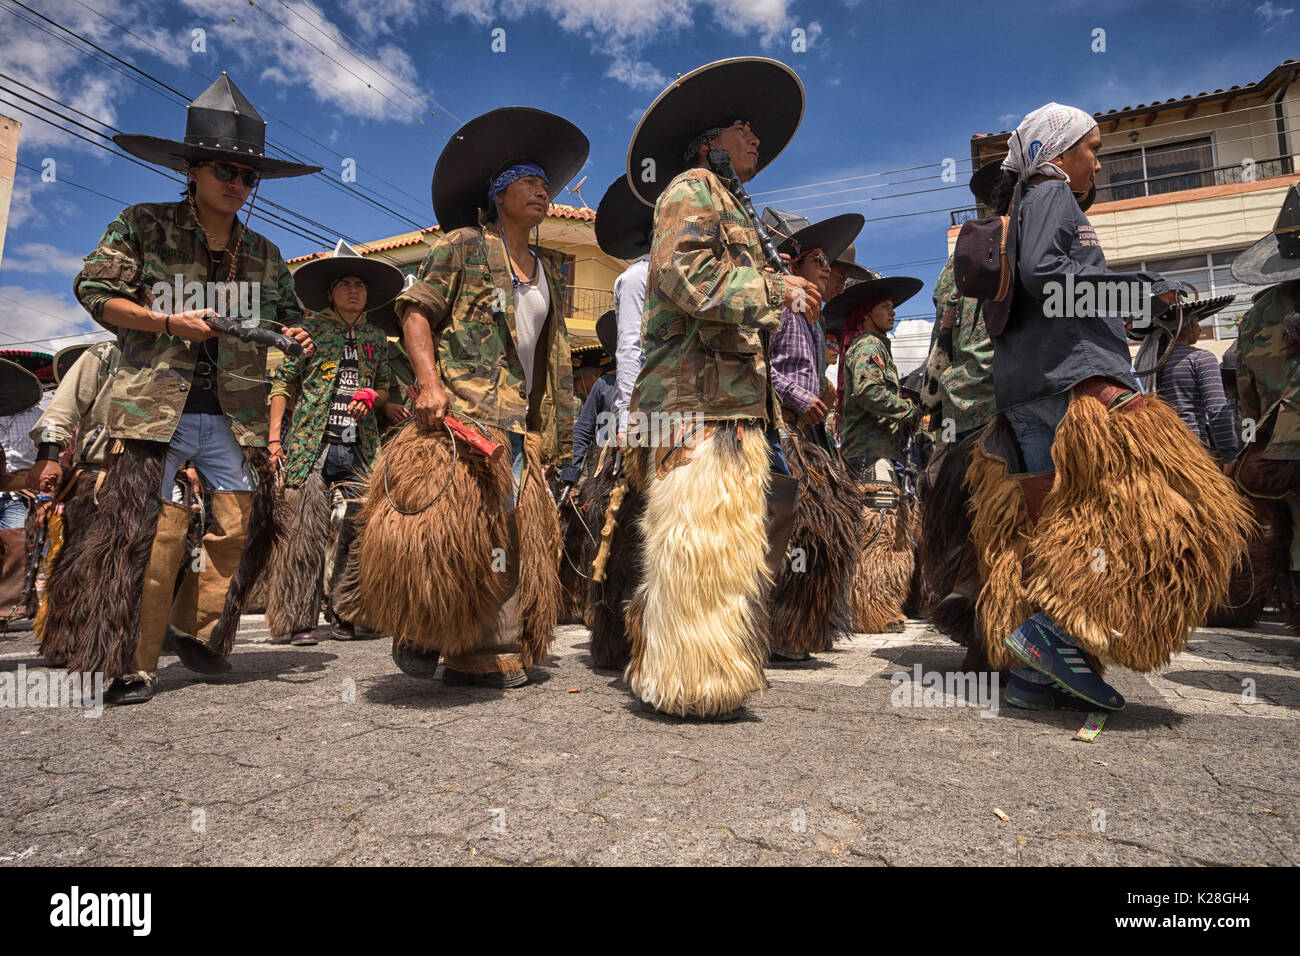 June 25, 2017 Cotacachi, Ecuador: low angle view of quechua indigenous men wearing chaps at Inti Raymi celebration - Stock Image